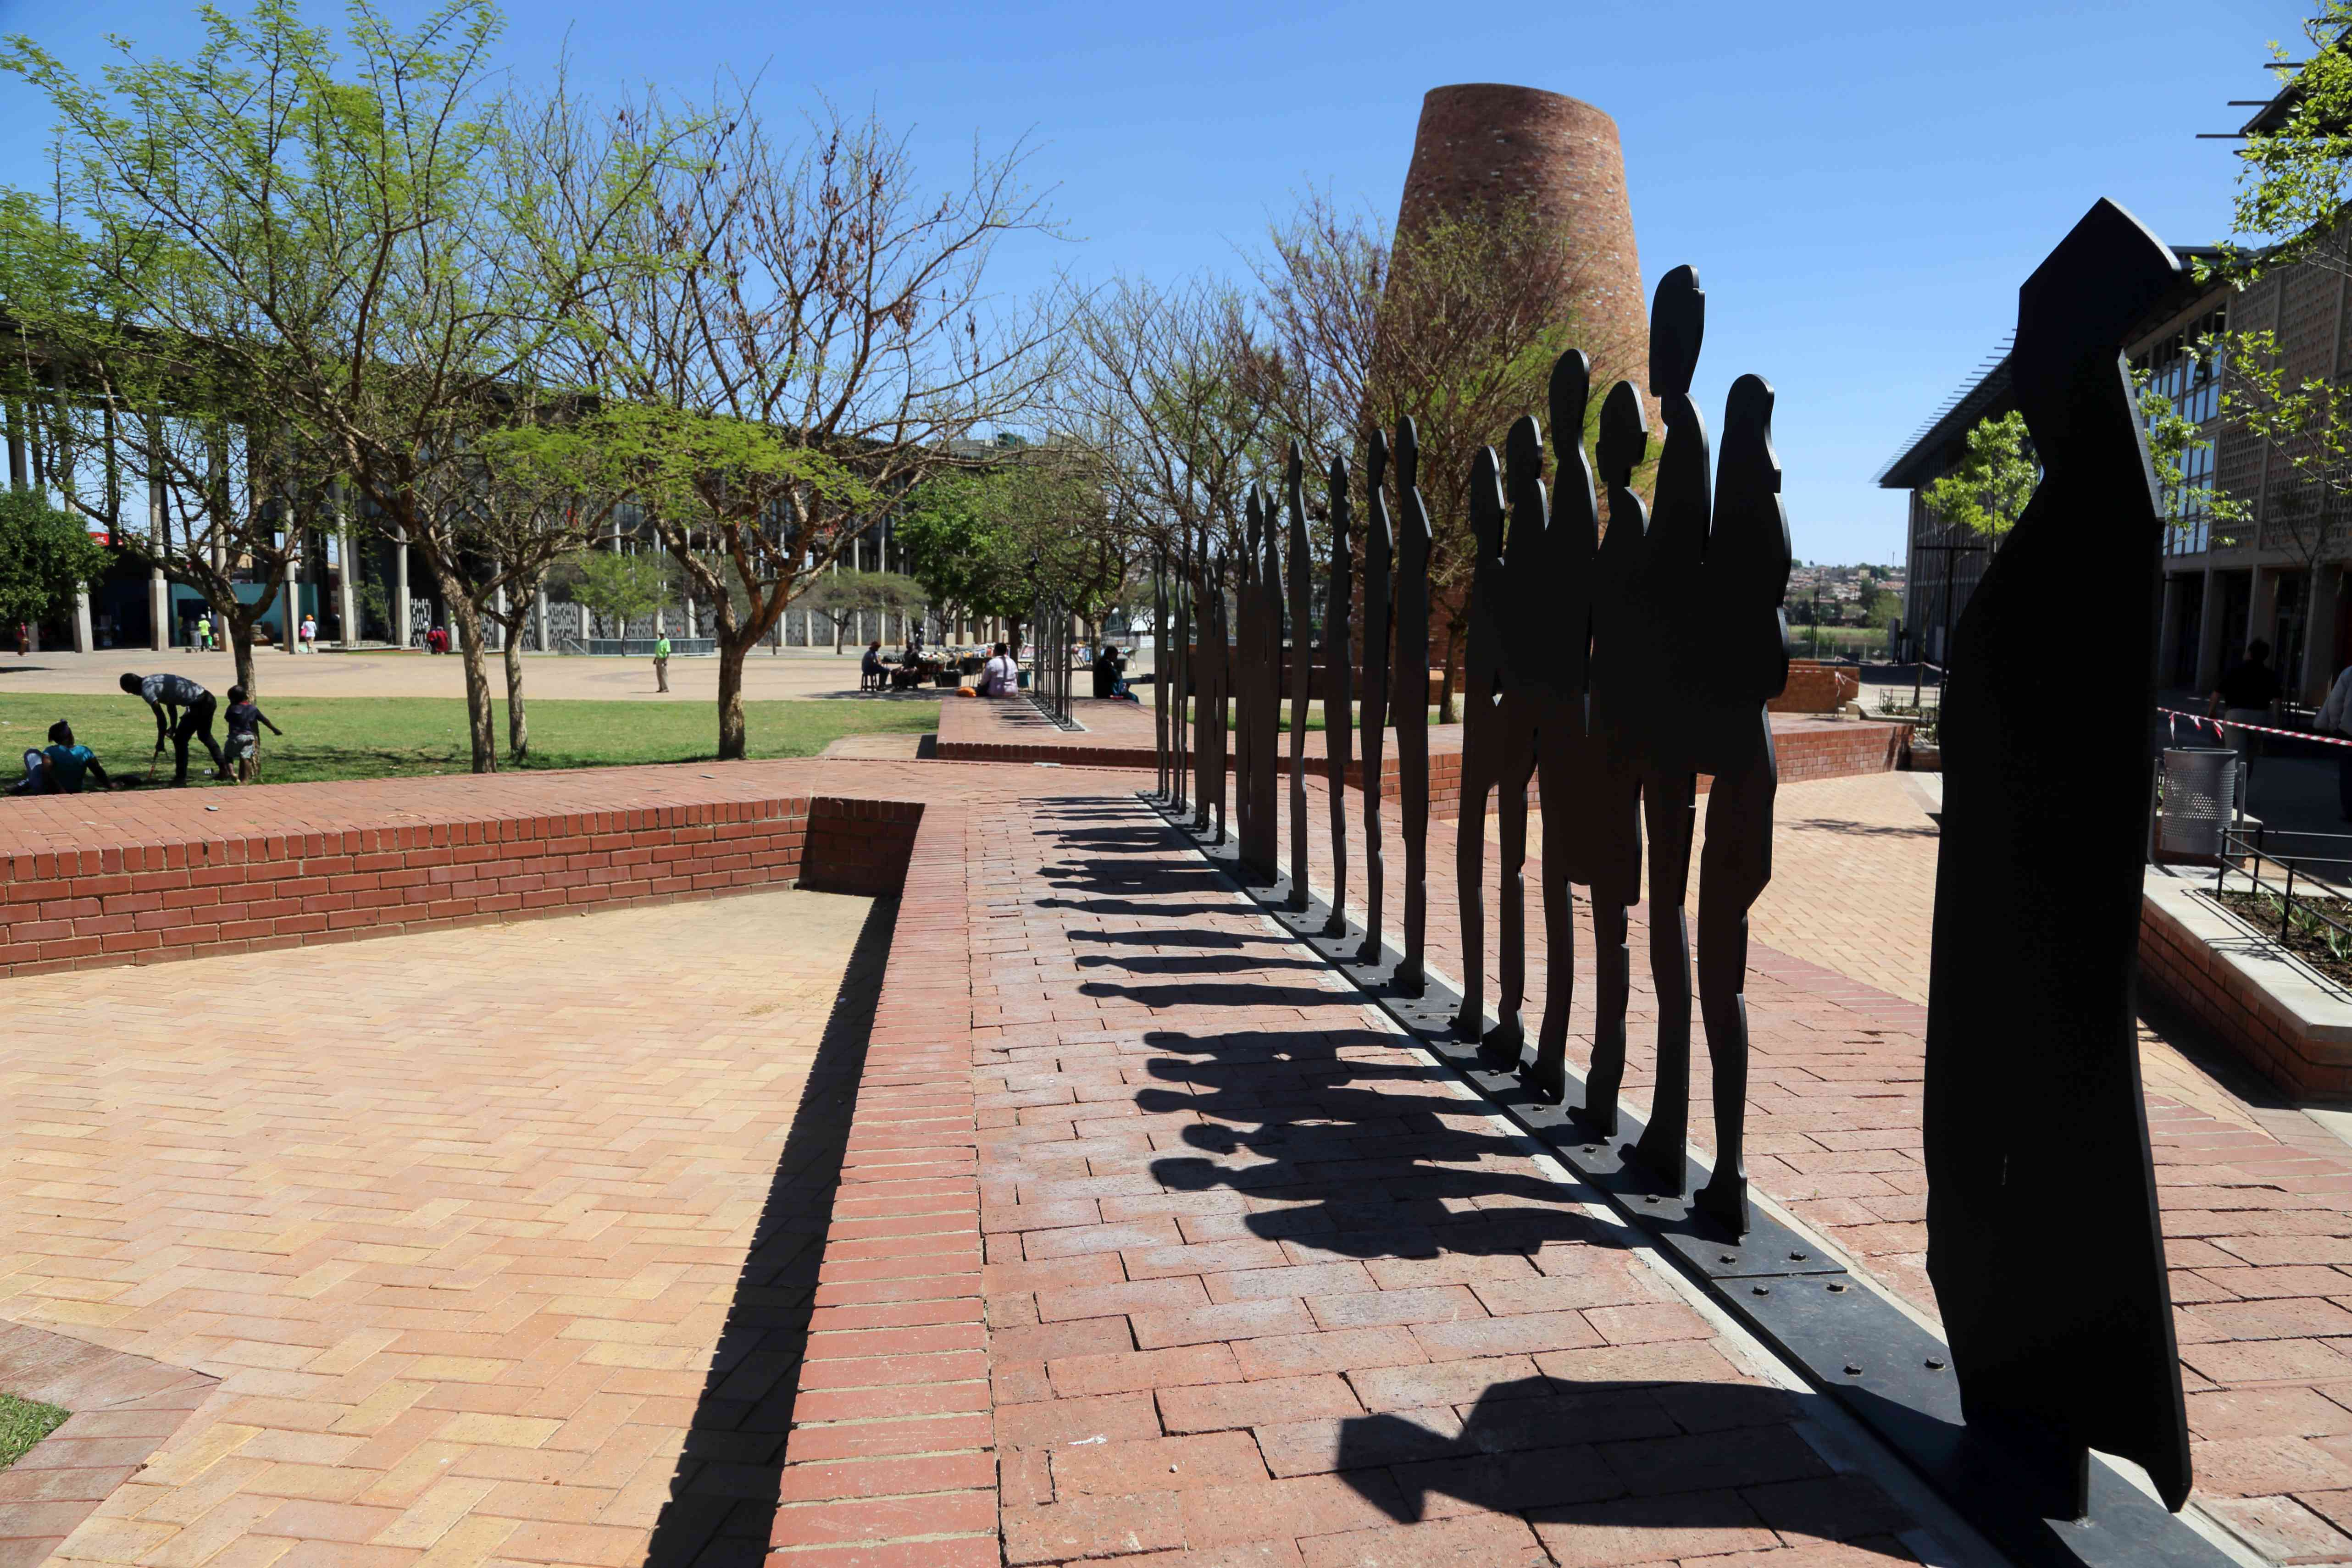 Sculpture in Walter Sisulu Square, Soweto, Johannesburg, South Africa